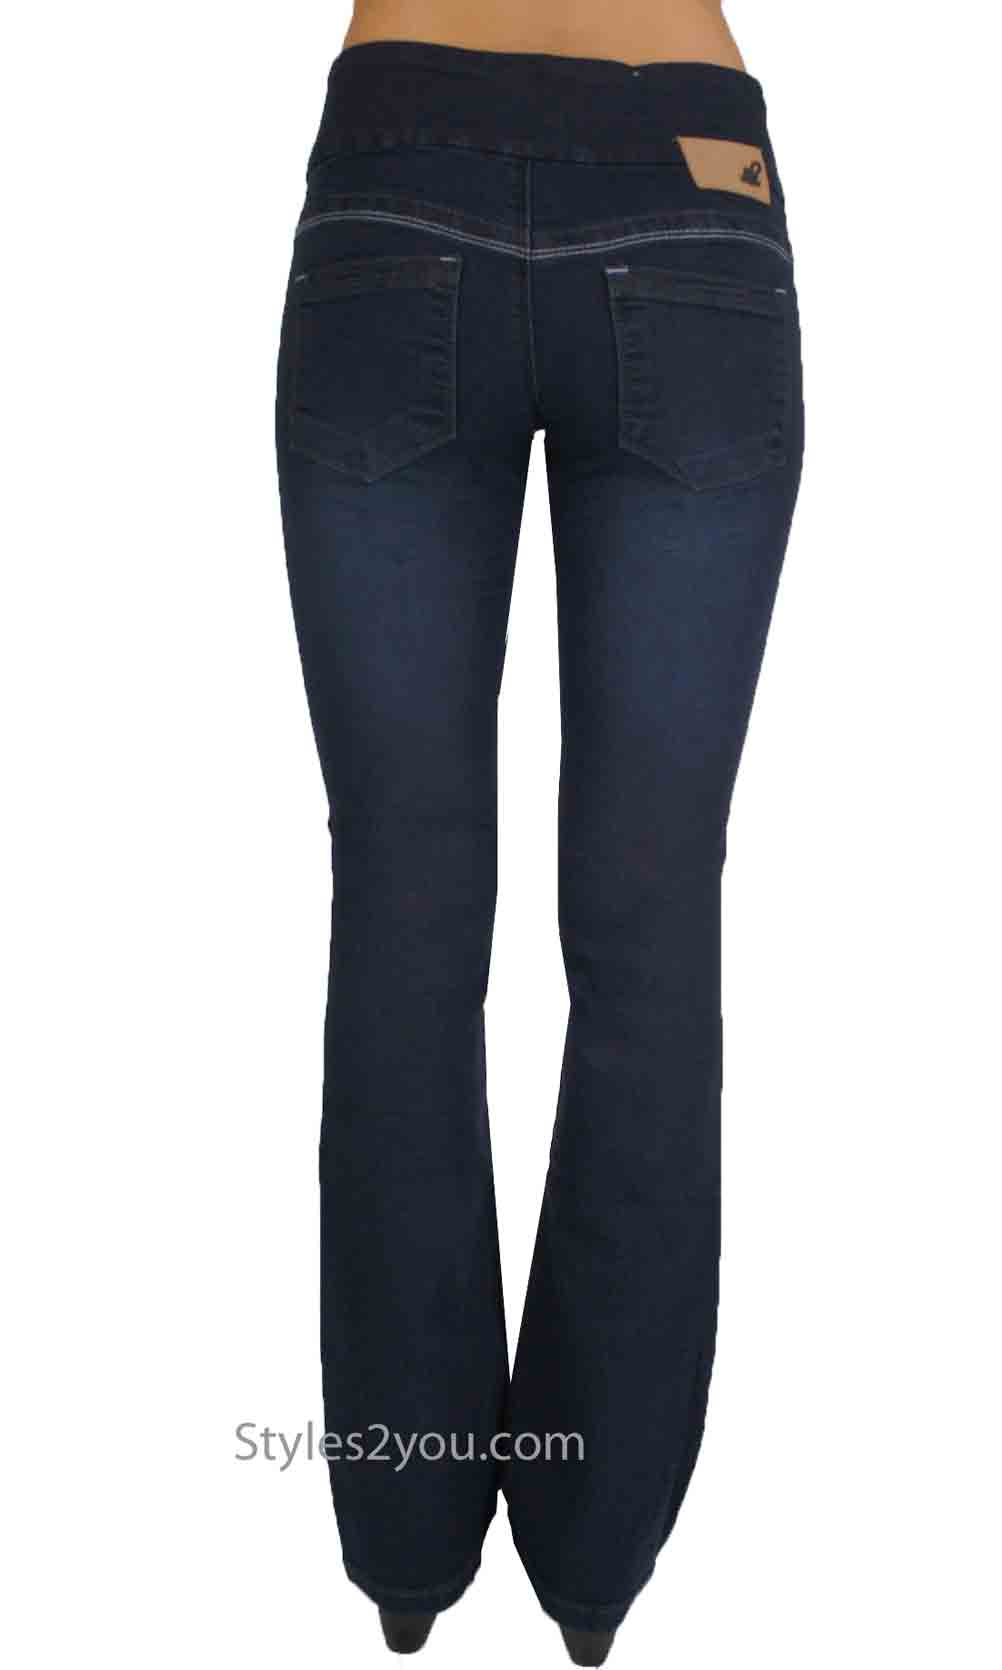 Lola Jeans Leah Bootcut Pull On Denim Jeans Midnight Blue